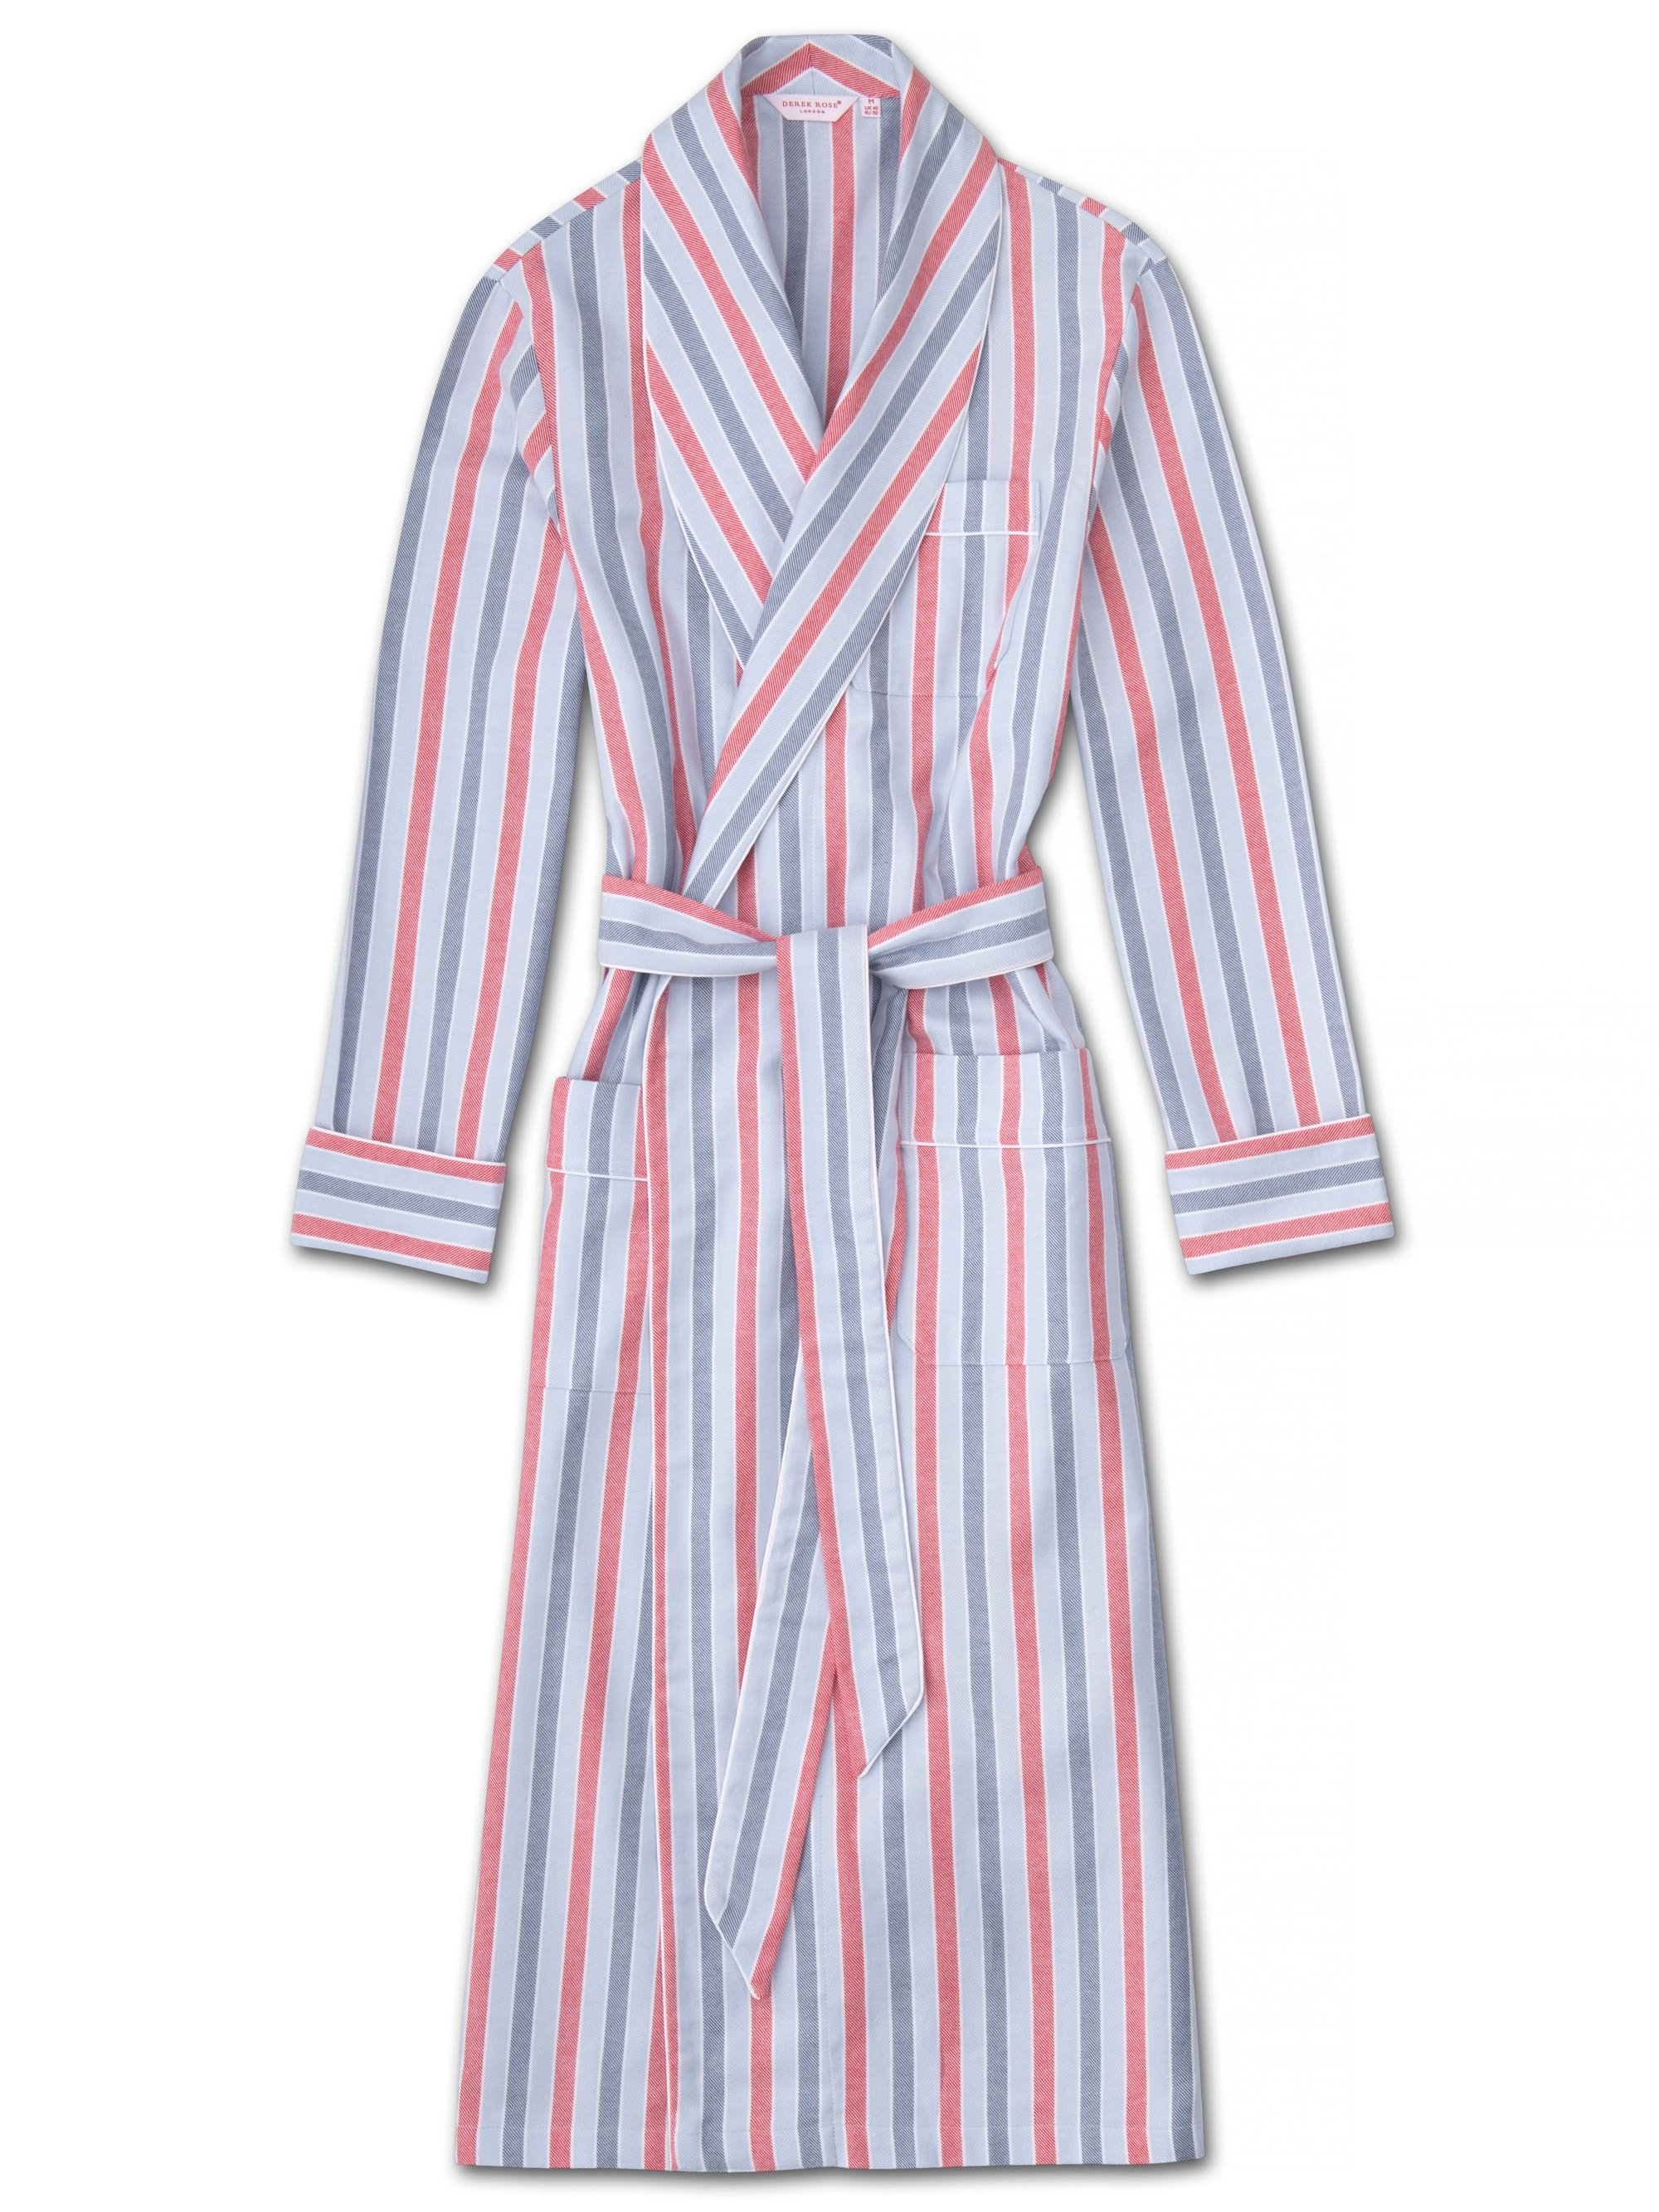 Men's Piped Dressing Gown Kelburn 11 Brushed Cotton Stripe Blue